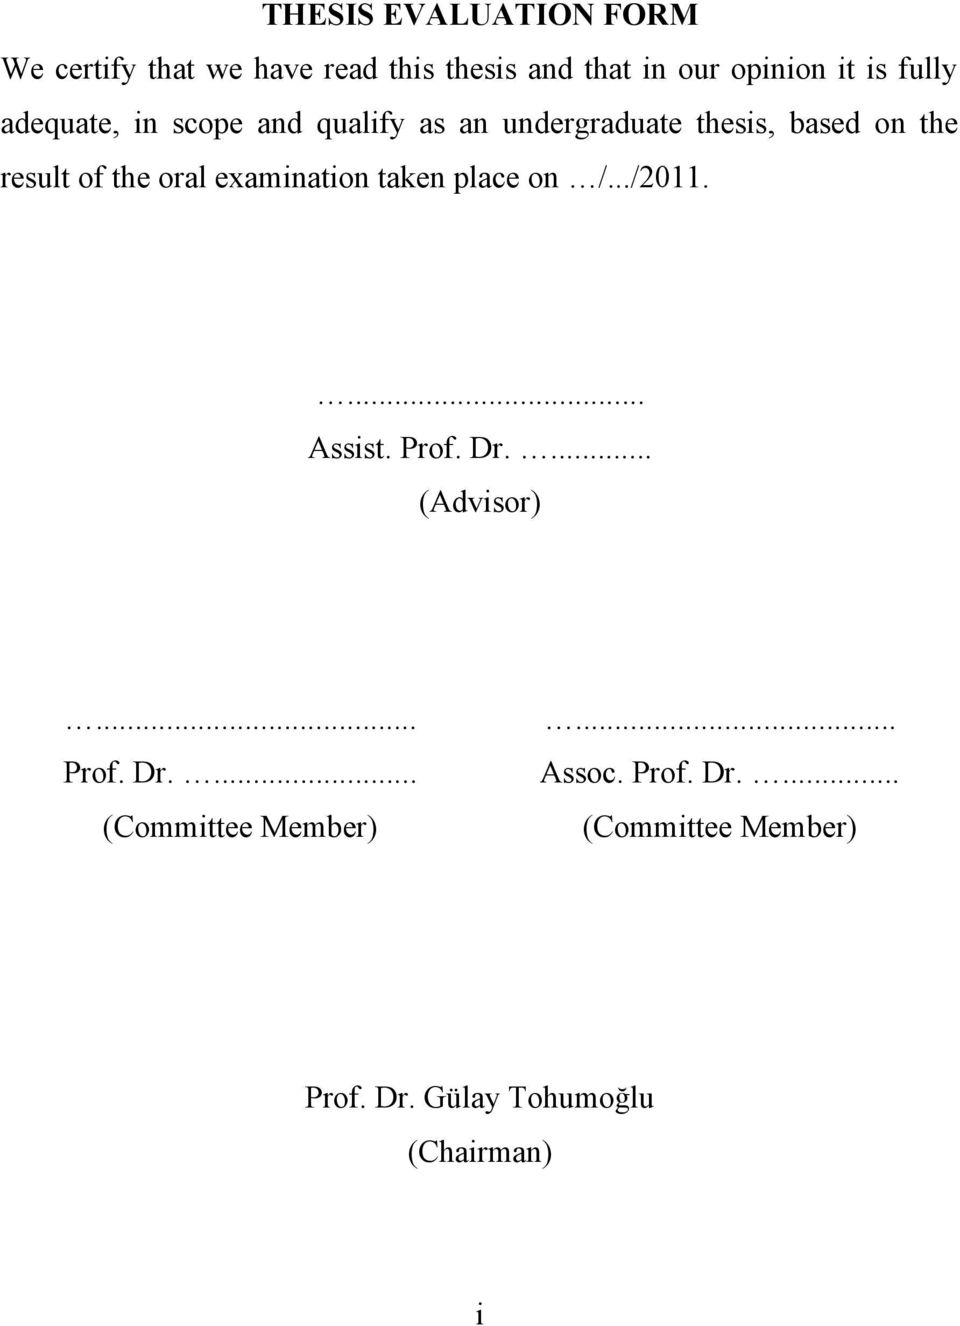 oral examination taken place on /.../2011.... Assist. Prof. Dr.... (Advisor)... Prof. Dr.... (Committee Member).